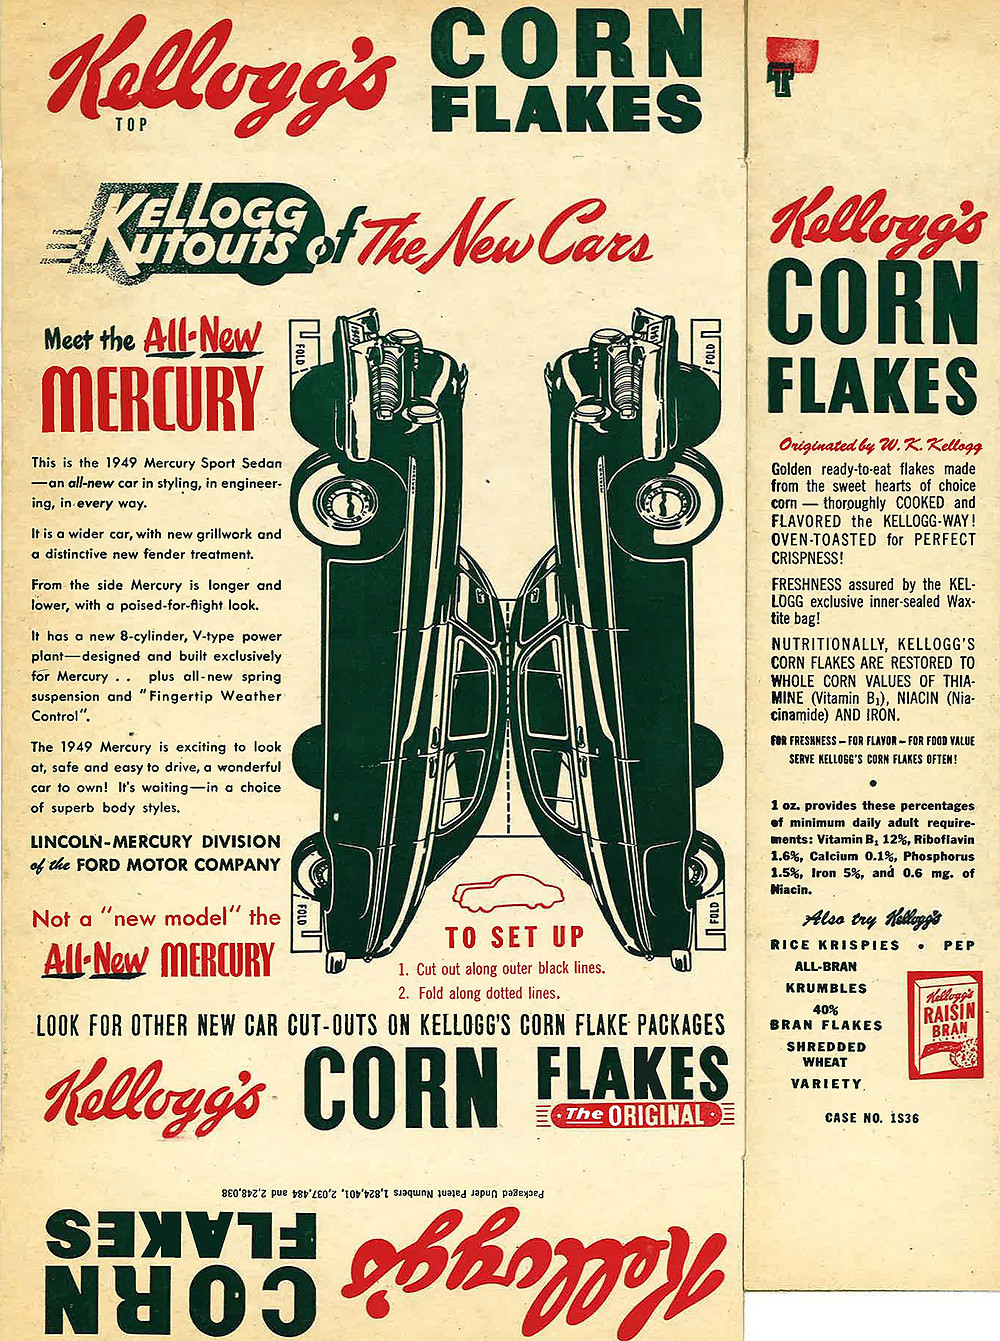 kelloggs corn flakes- kellogg kutouts of the new cars